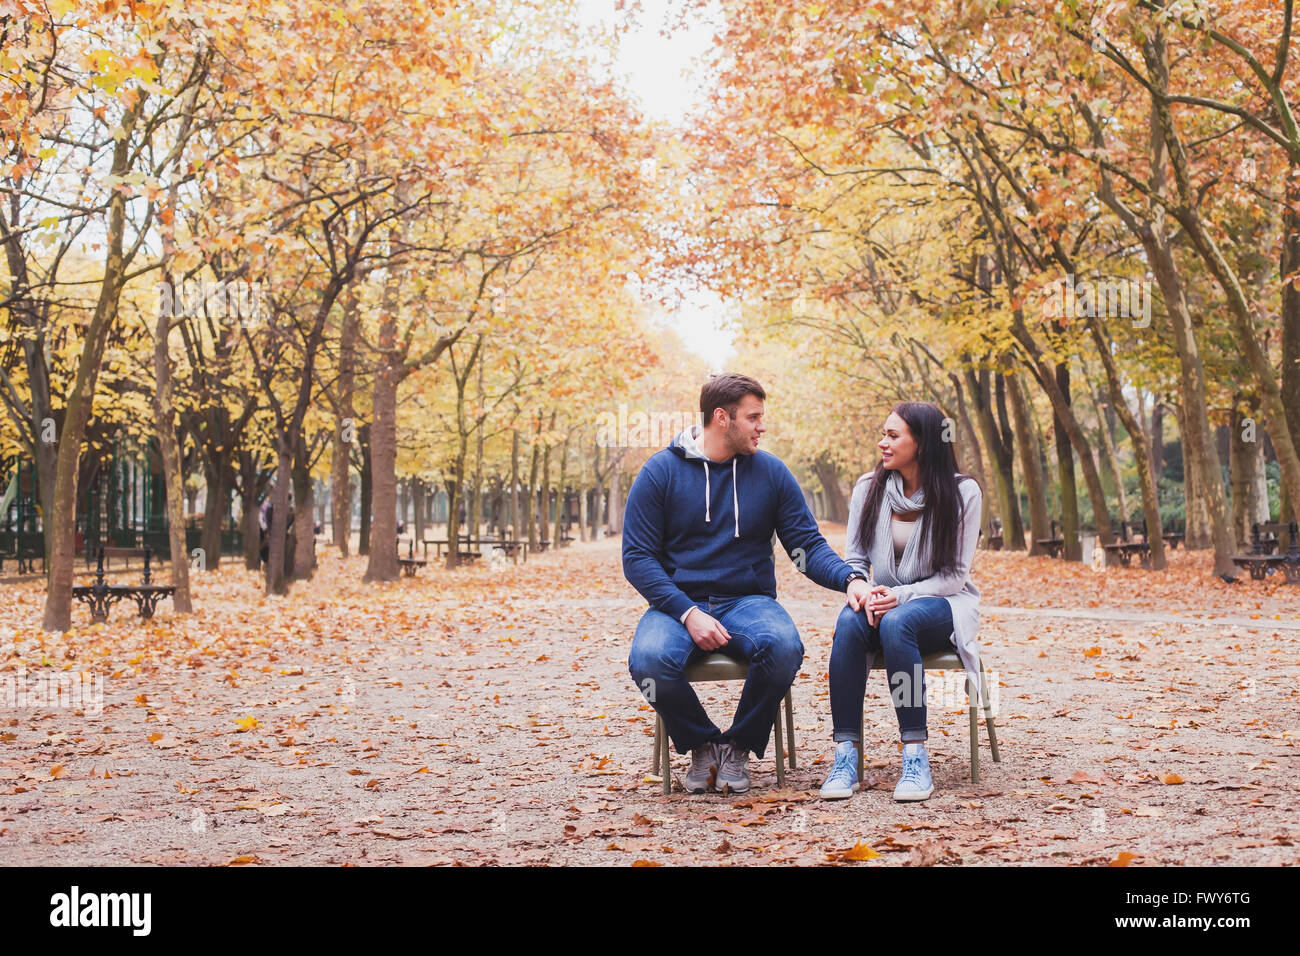 man and woman relationship, family psychology concept, love and dating - Stock Image